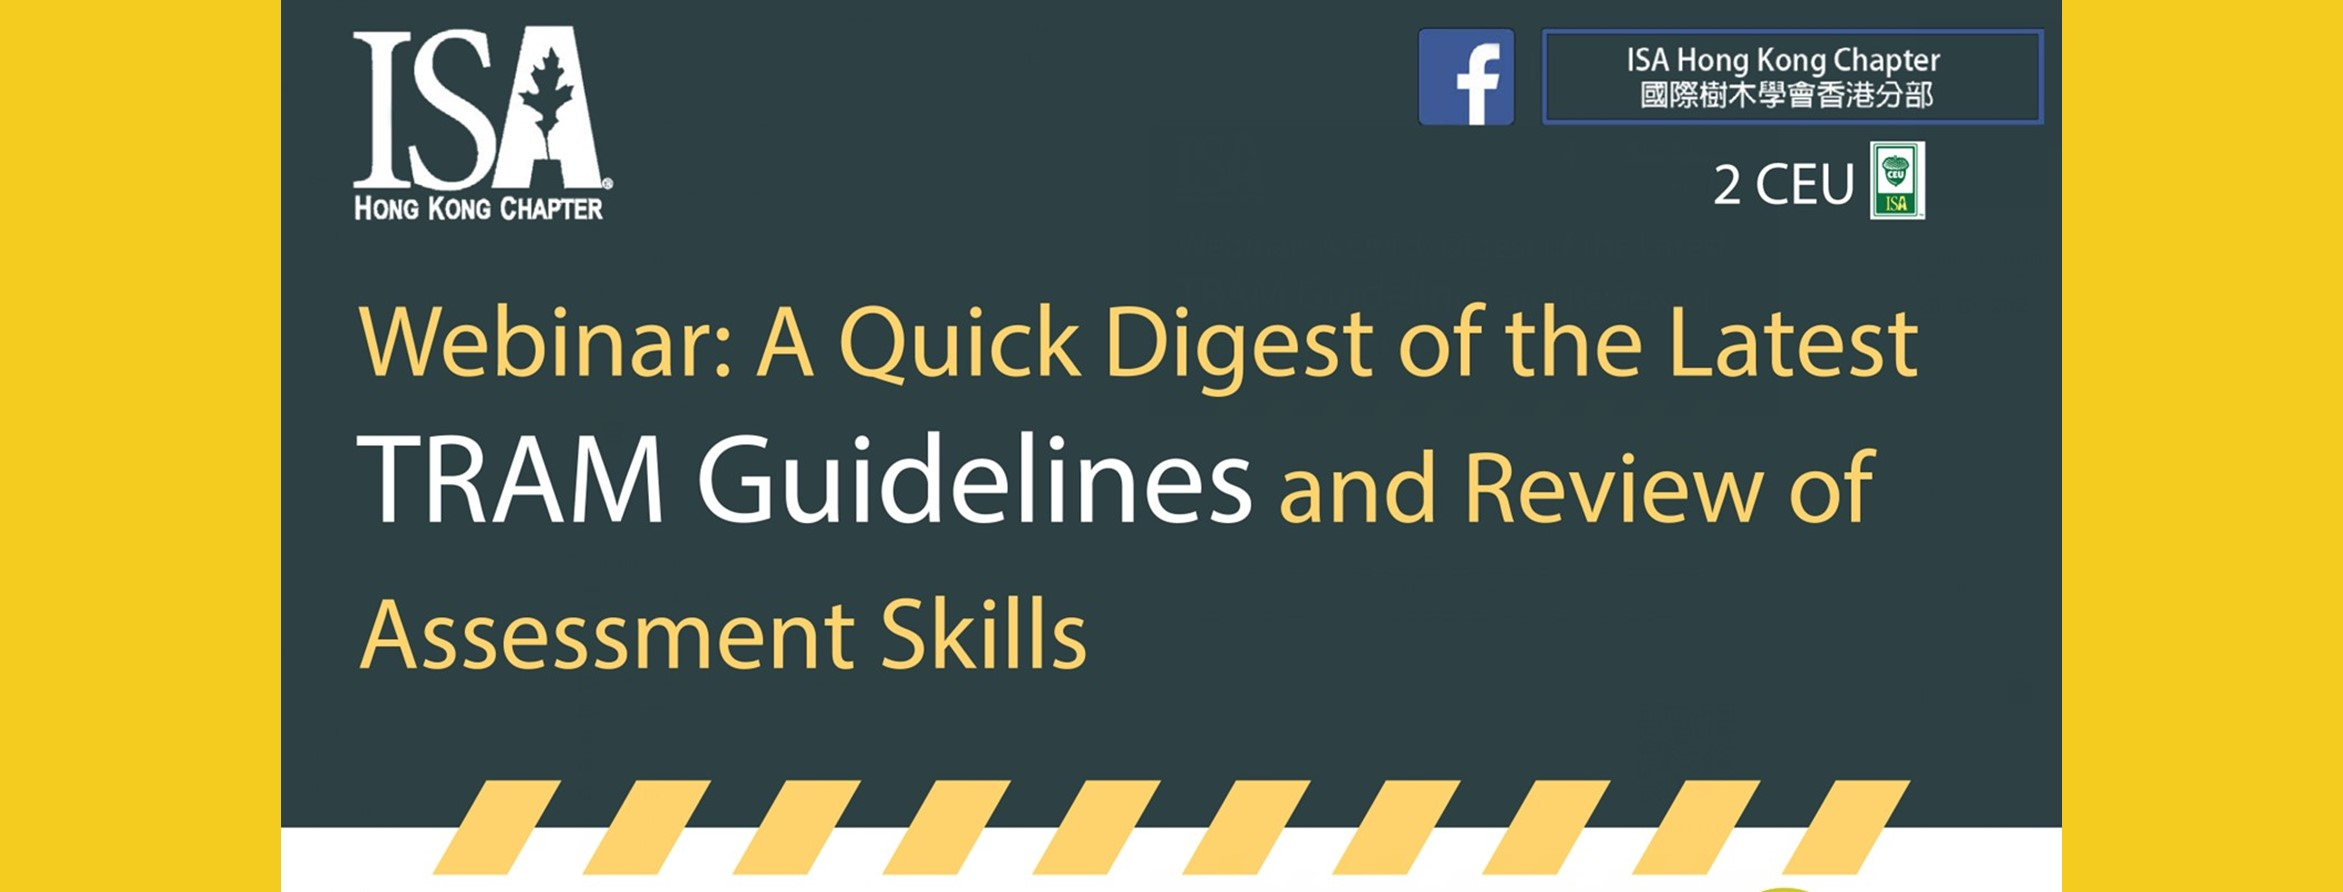 Dec 18 Webinar: A Quick Digest of the Latest TRAM Guideline and a Review of Assessment Skills